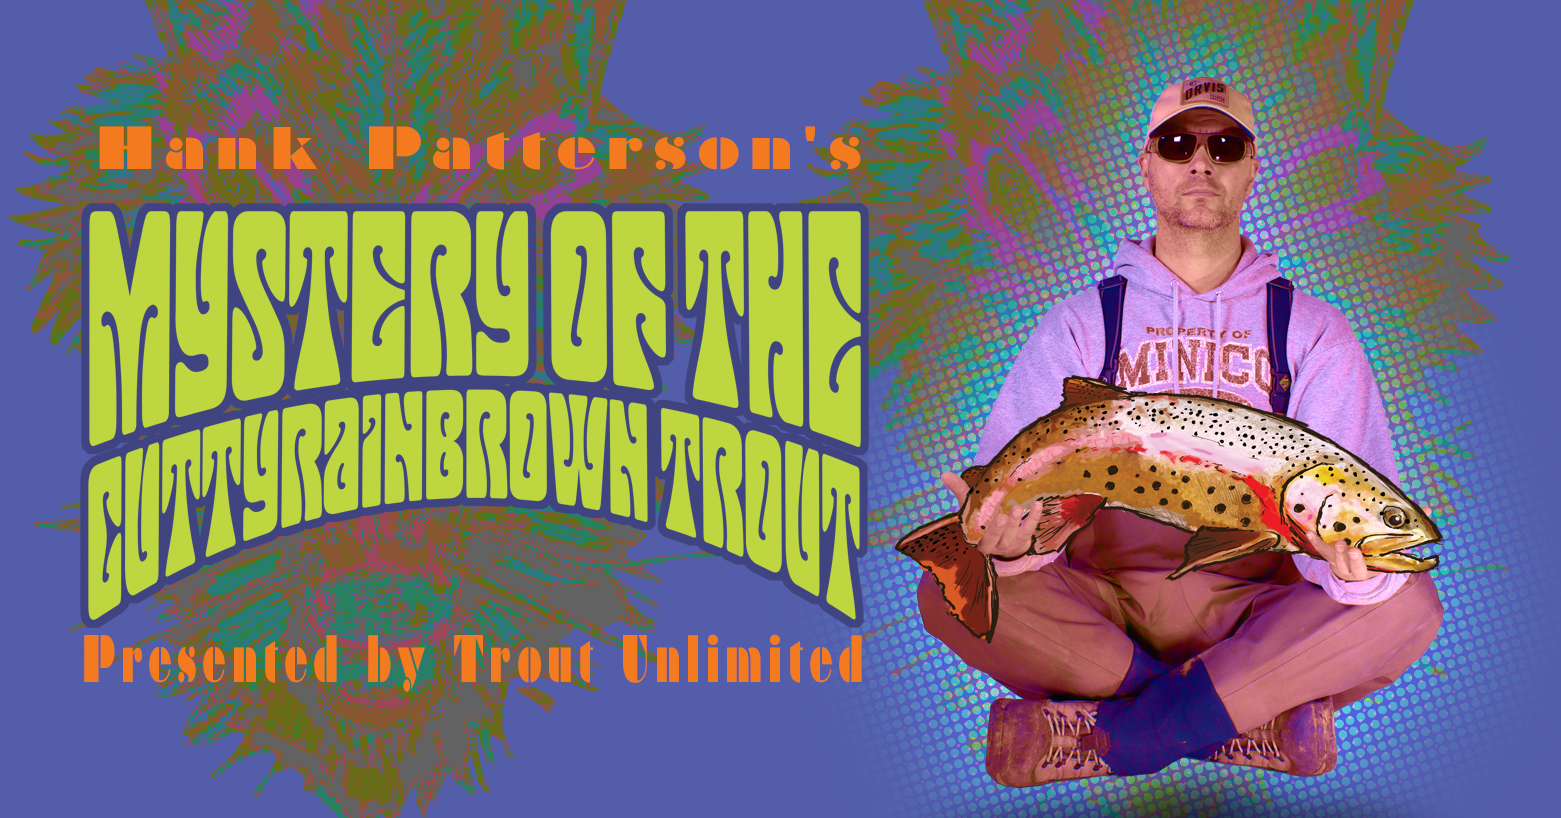 Hank Patterson 39 S Mystery Of The Cuttyrainbrown Trout